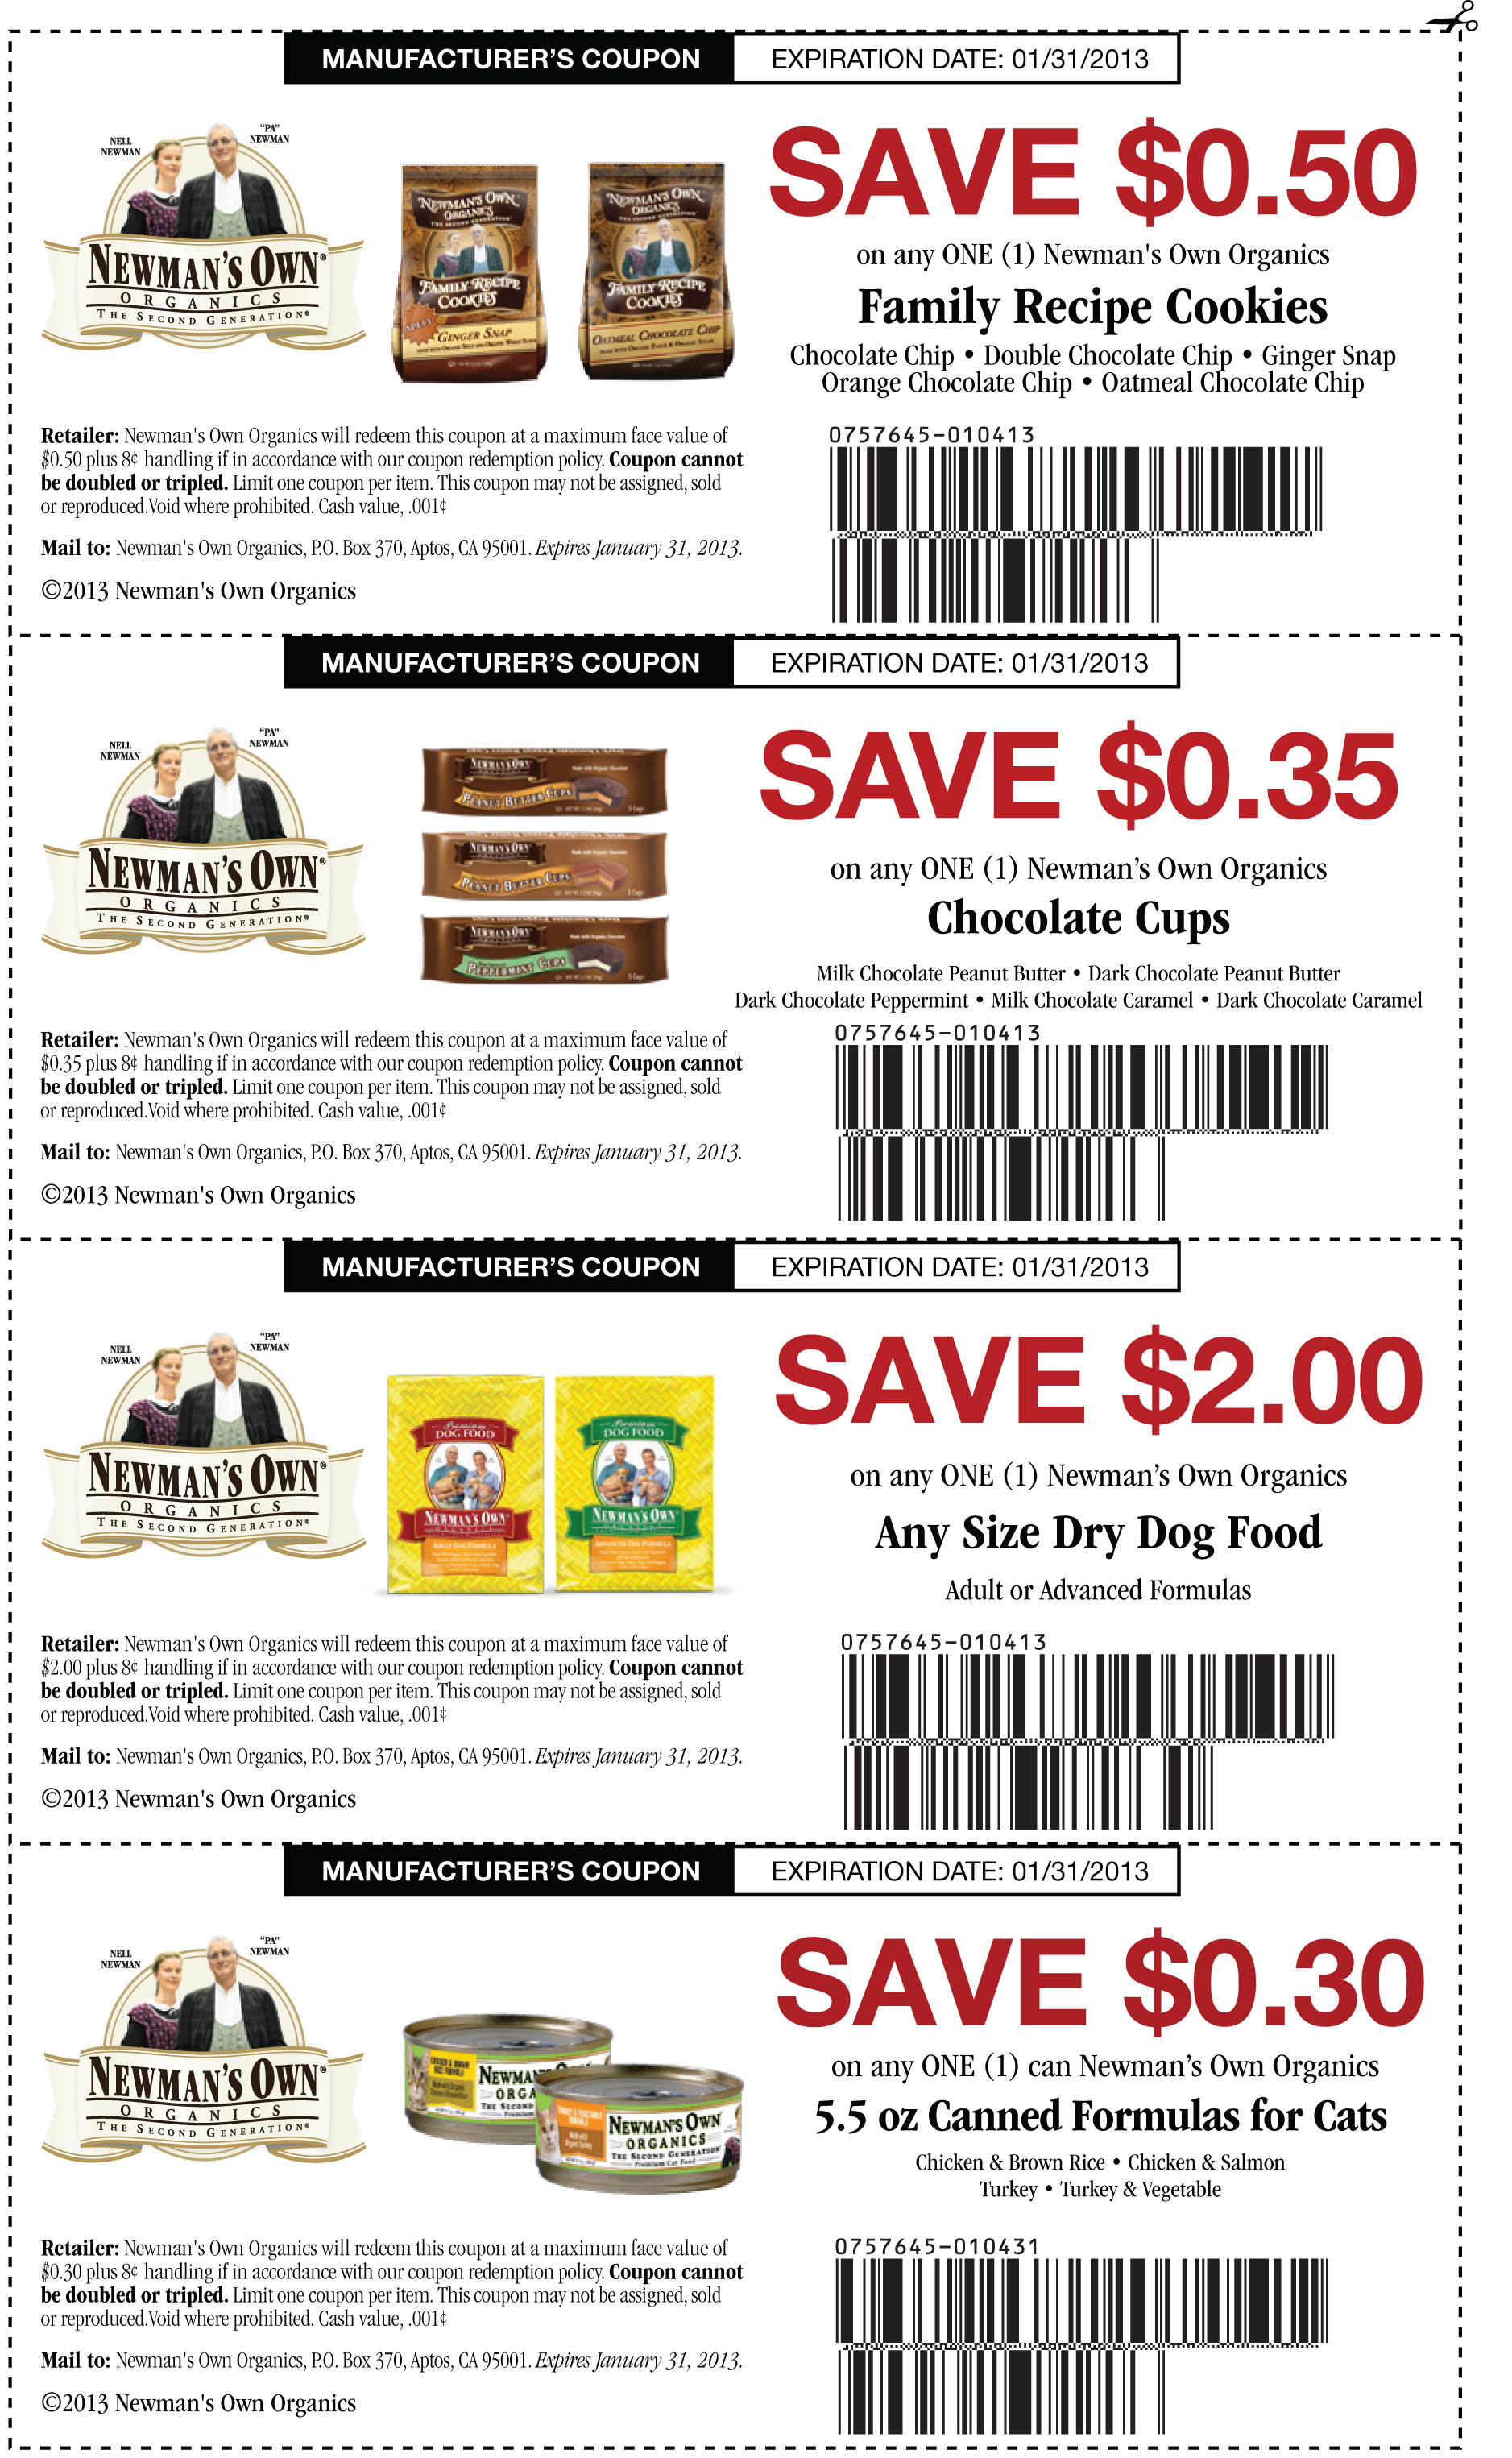 Oil Change Coupons 2015 >> Newman's Own Organics Multiple Coupons List | Print Coupon King